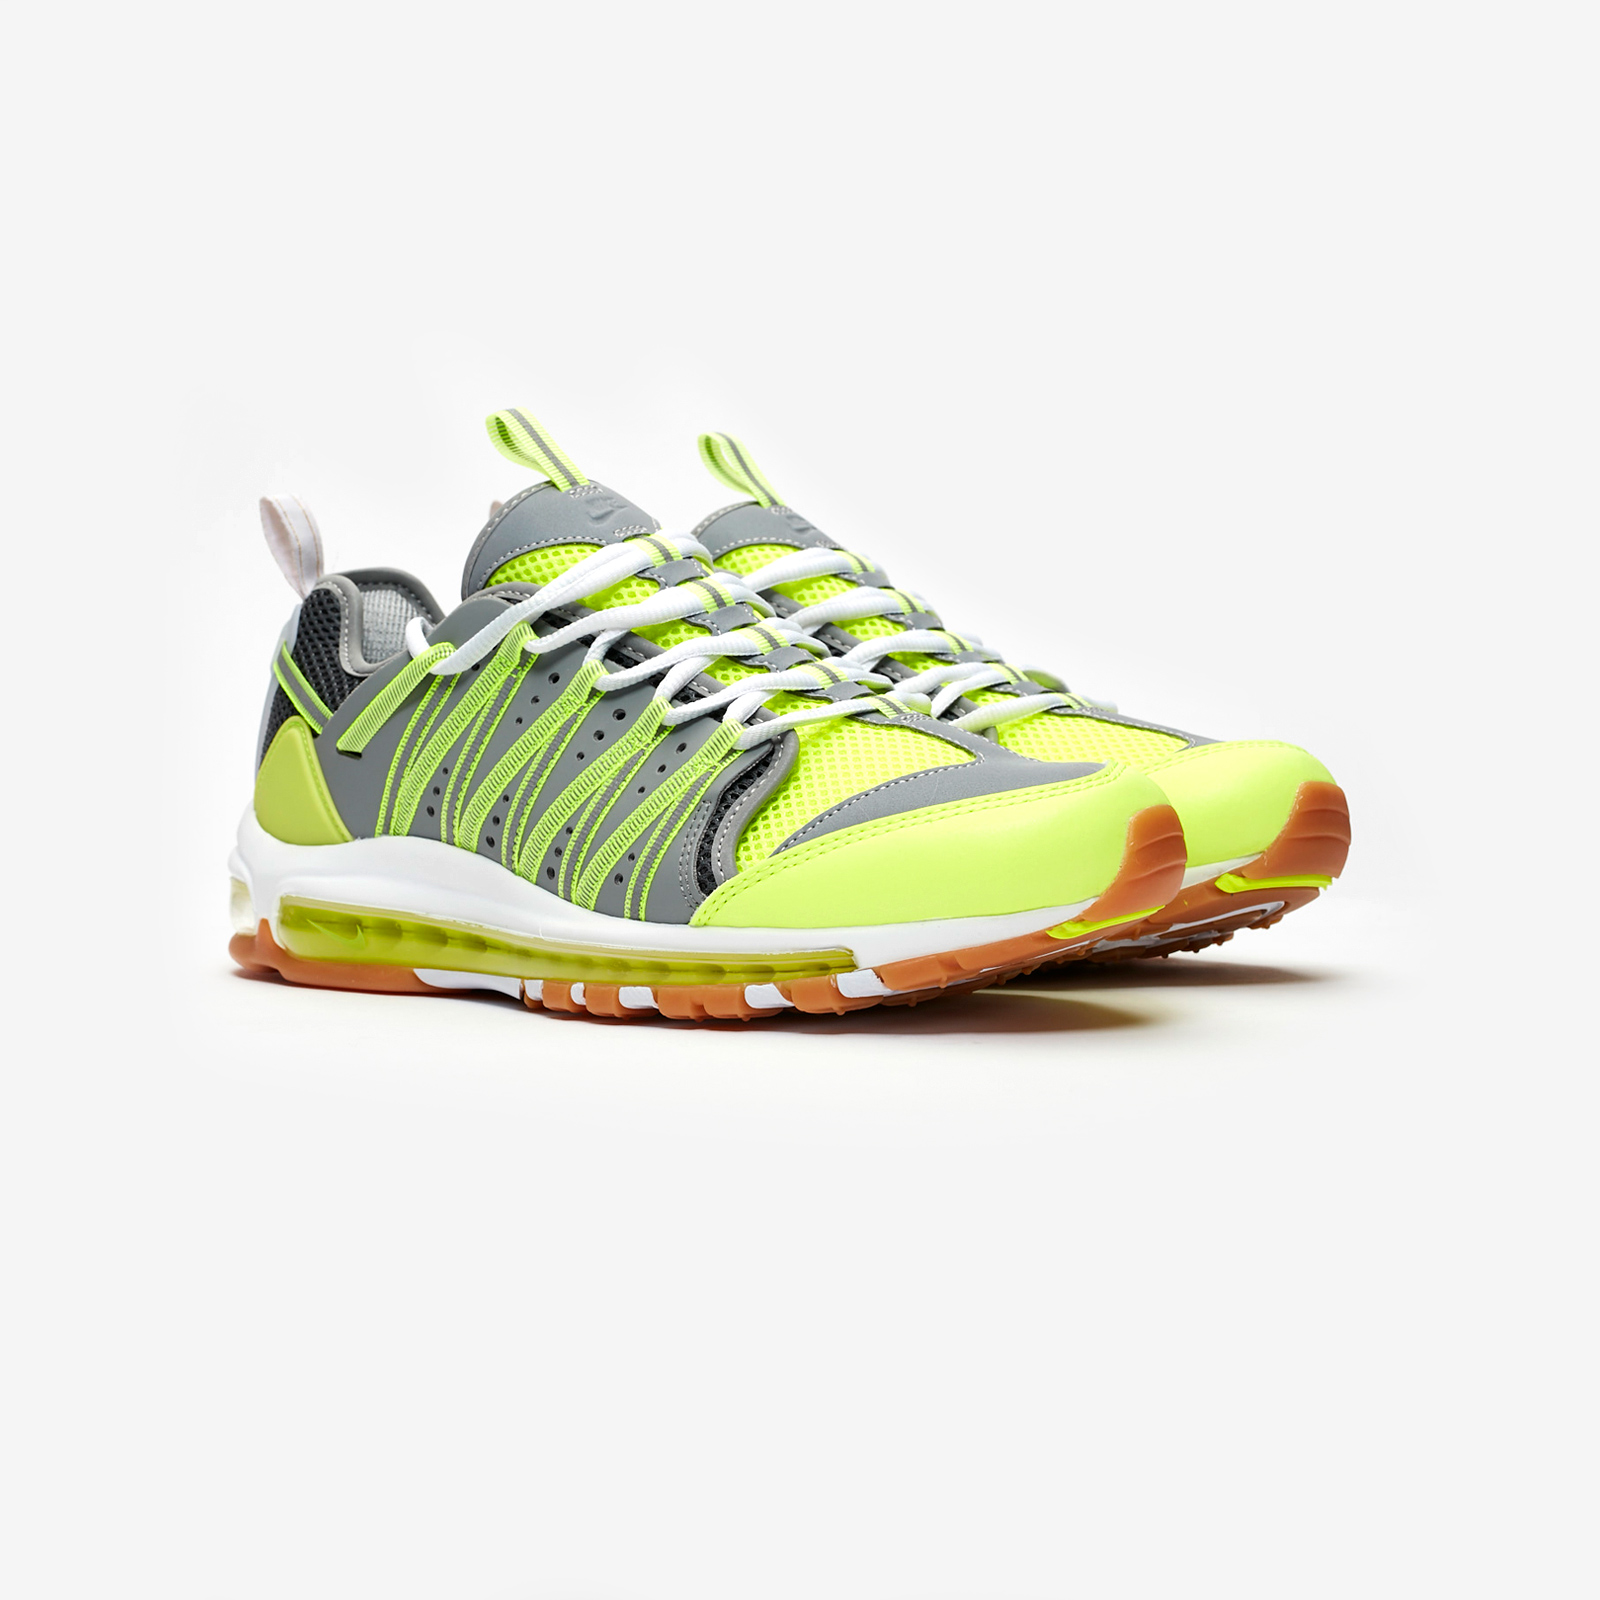 reputable site 65c85 1dcc9 Nike Air Max 97 Haven   Clot - Ao2134-700 - Sneakersnstuff   sneakers    streetwear online since 1999